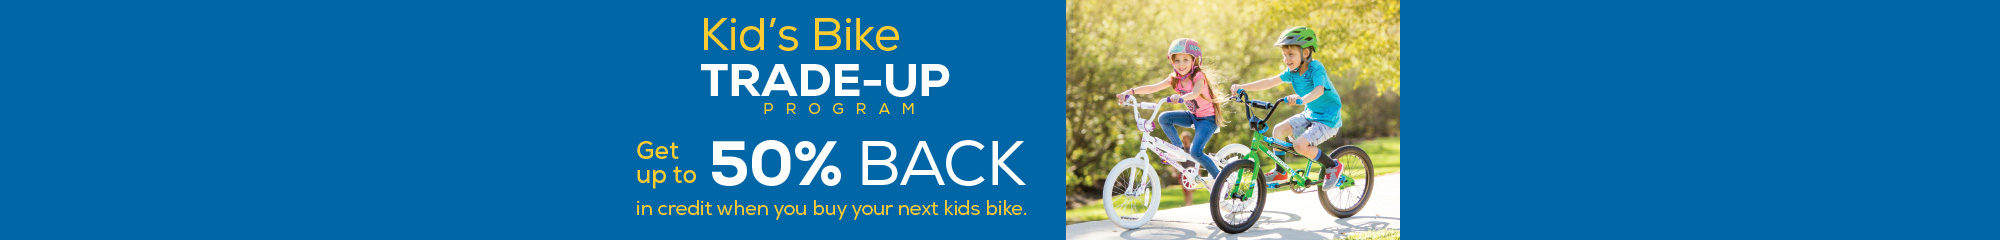 Kids Bike Trade-Up. Get up to 50% credit on your next kid's bike.